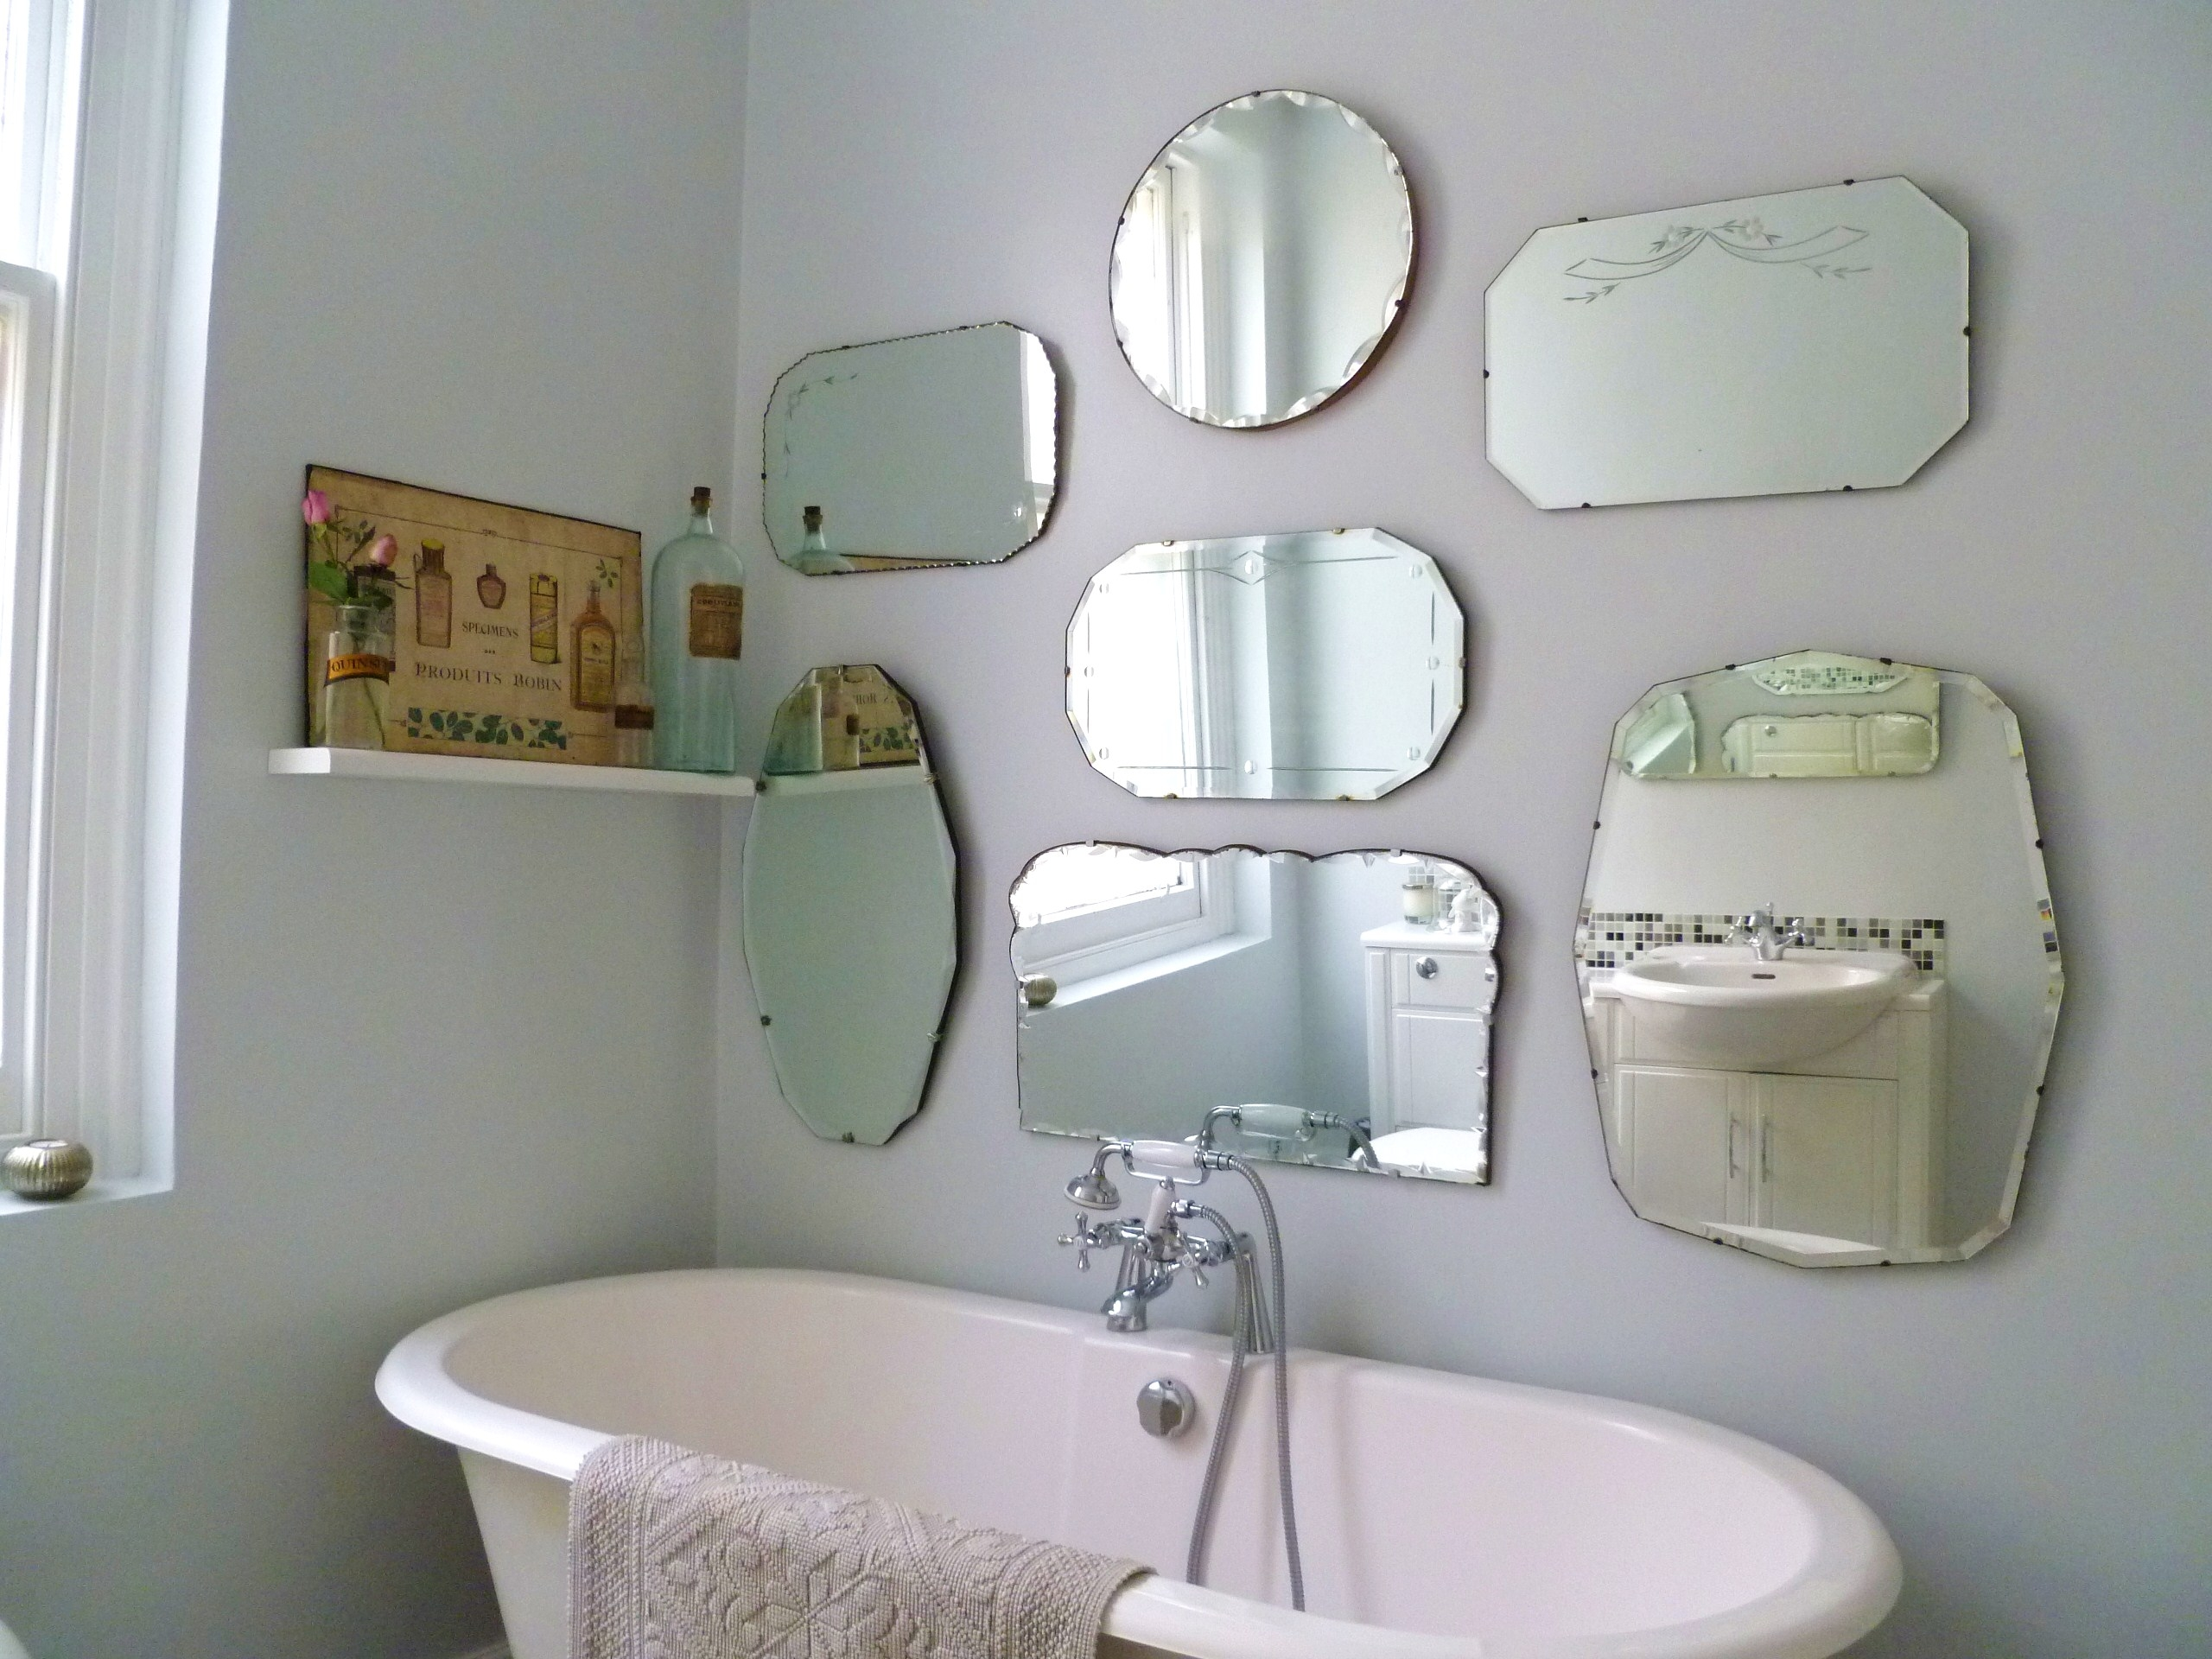 Home Decor Vintage Bathroom Mirror Master Bathroom Ideas 37986 With Vintage Bathroom Mirrors Sale (Image 7 of 15)